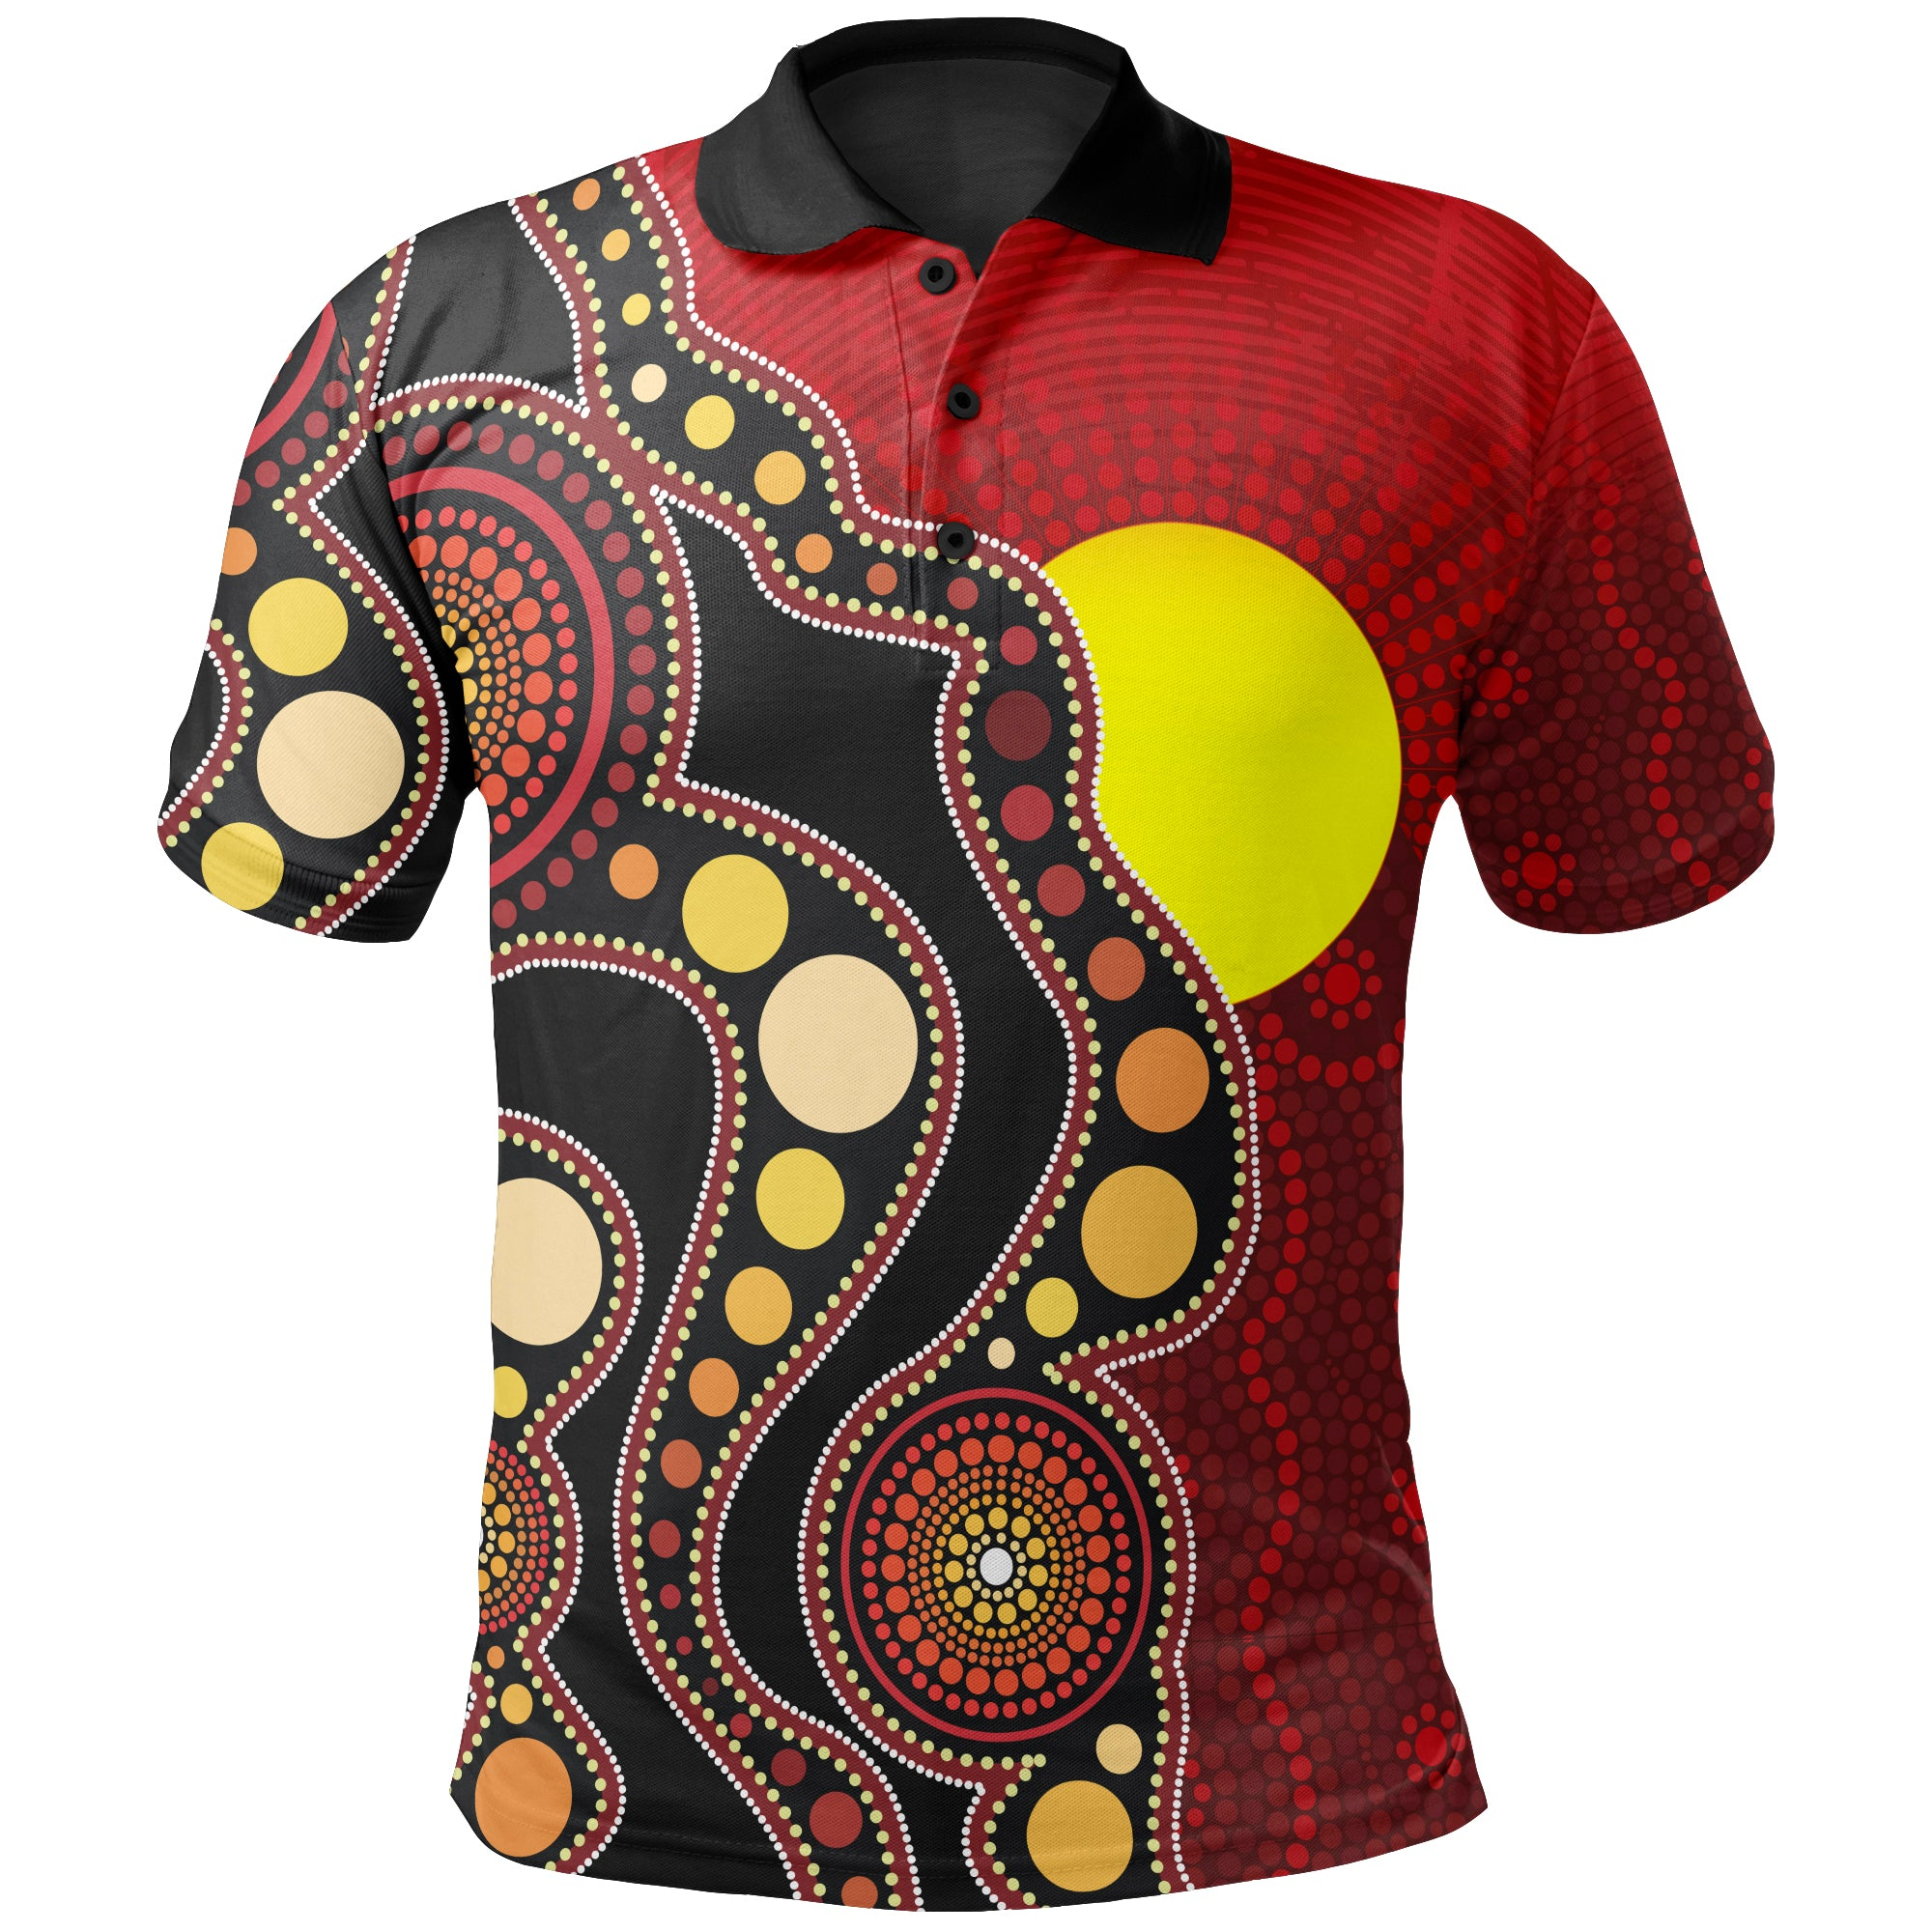 1stAustralia Aboriginal Polo Shirt, Australia Indigenous Circle Dot Painting Art